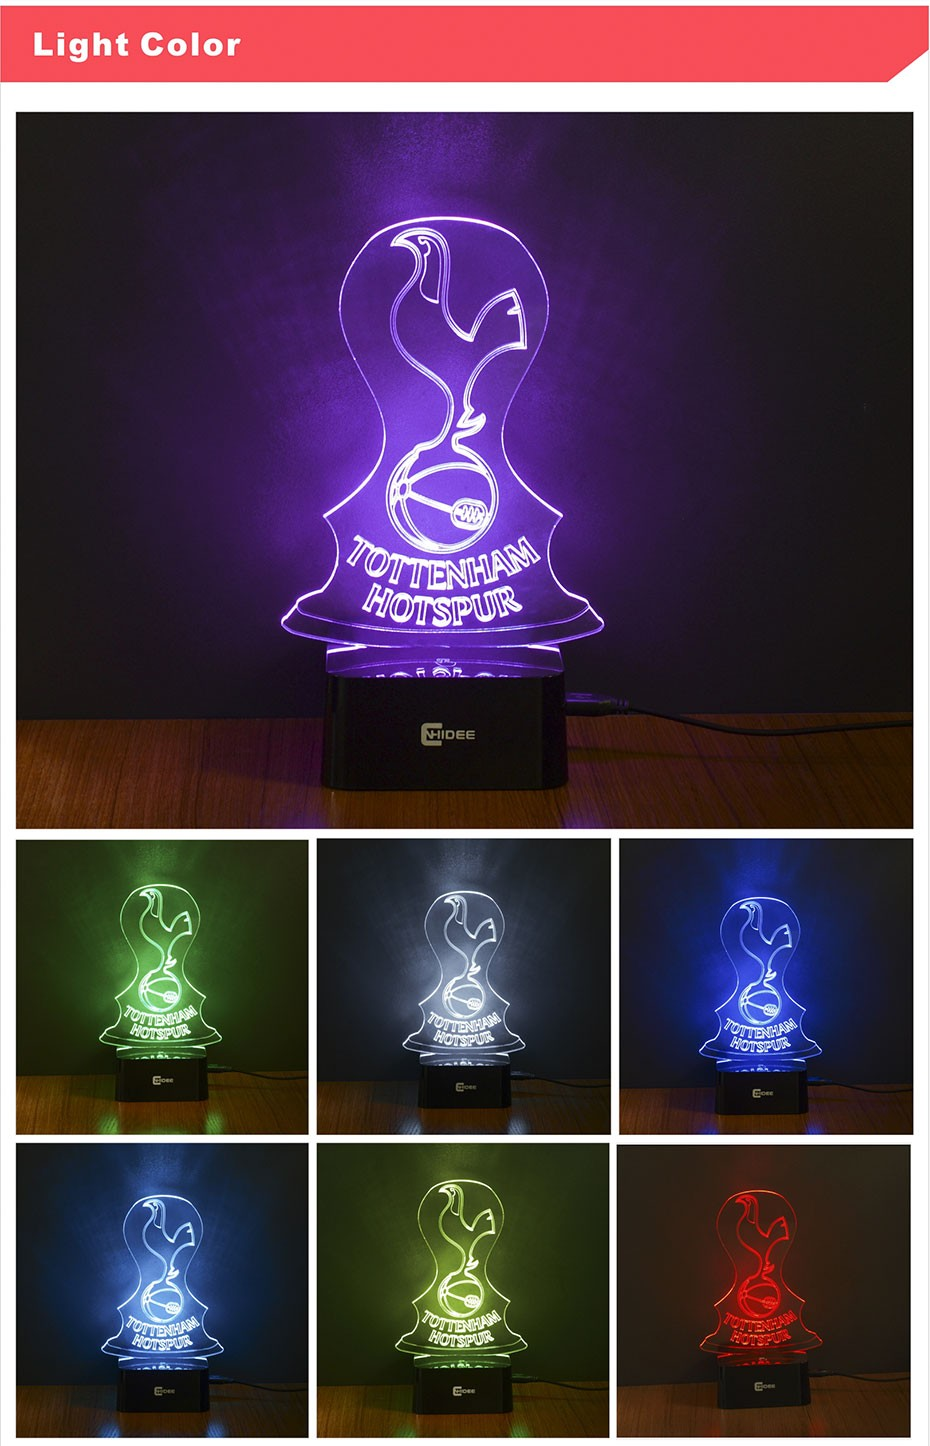 3D Led Lampara Futbol 7 Colors Changing Night Lights as Home Decor Desk Nightlight USB Table Lamps for Football Fans (3)